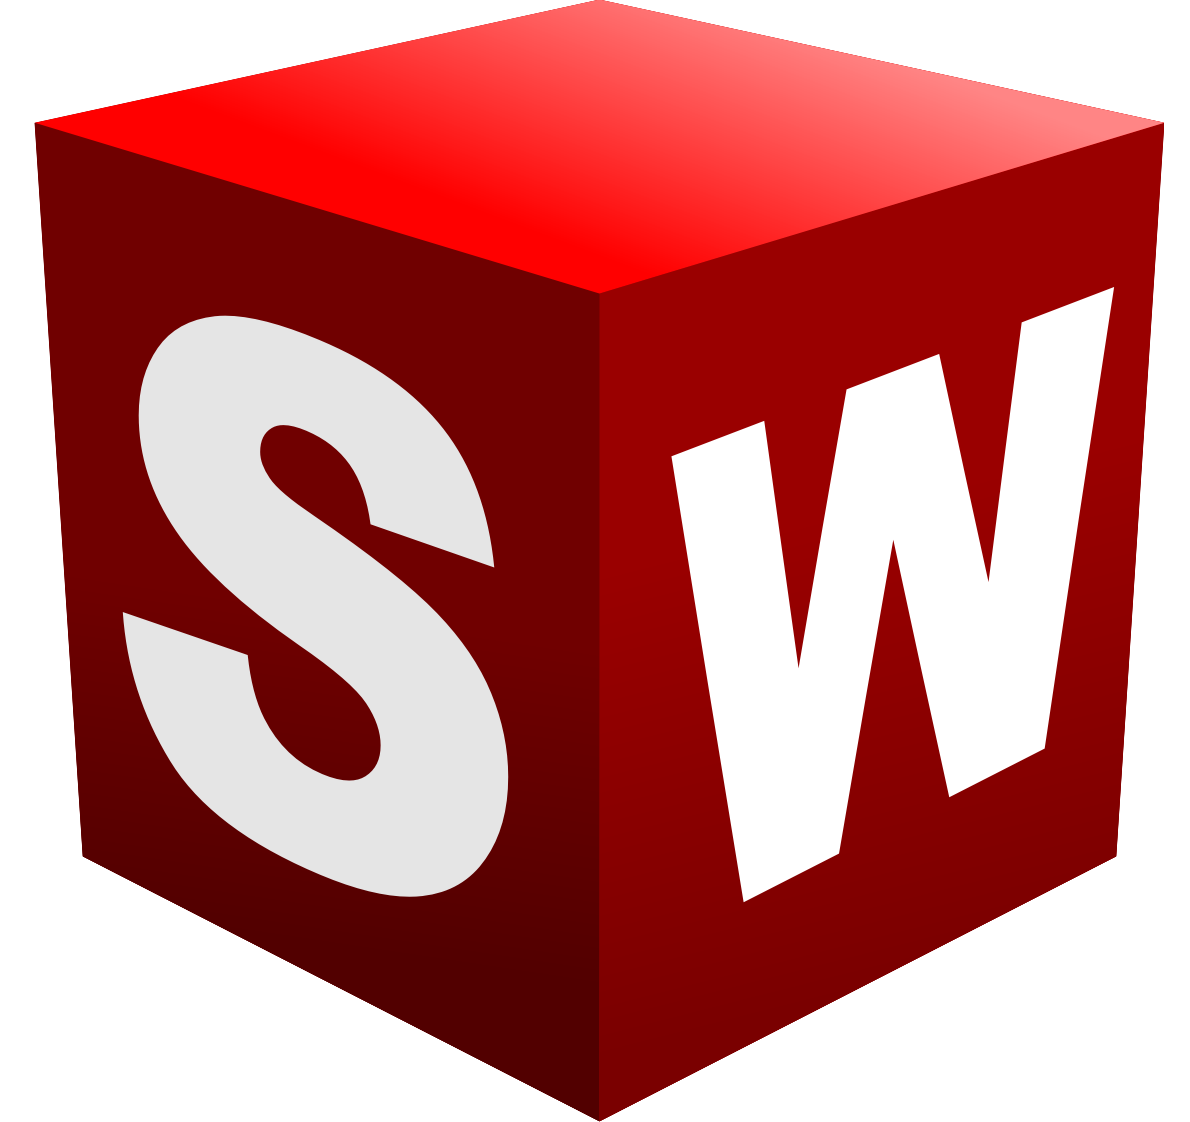 solidworks 2015 tutorial pdf free download